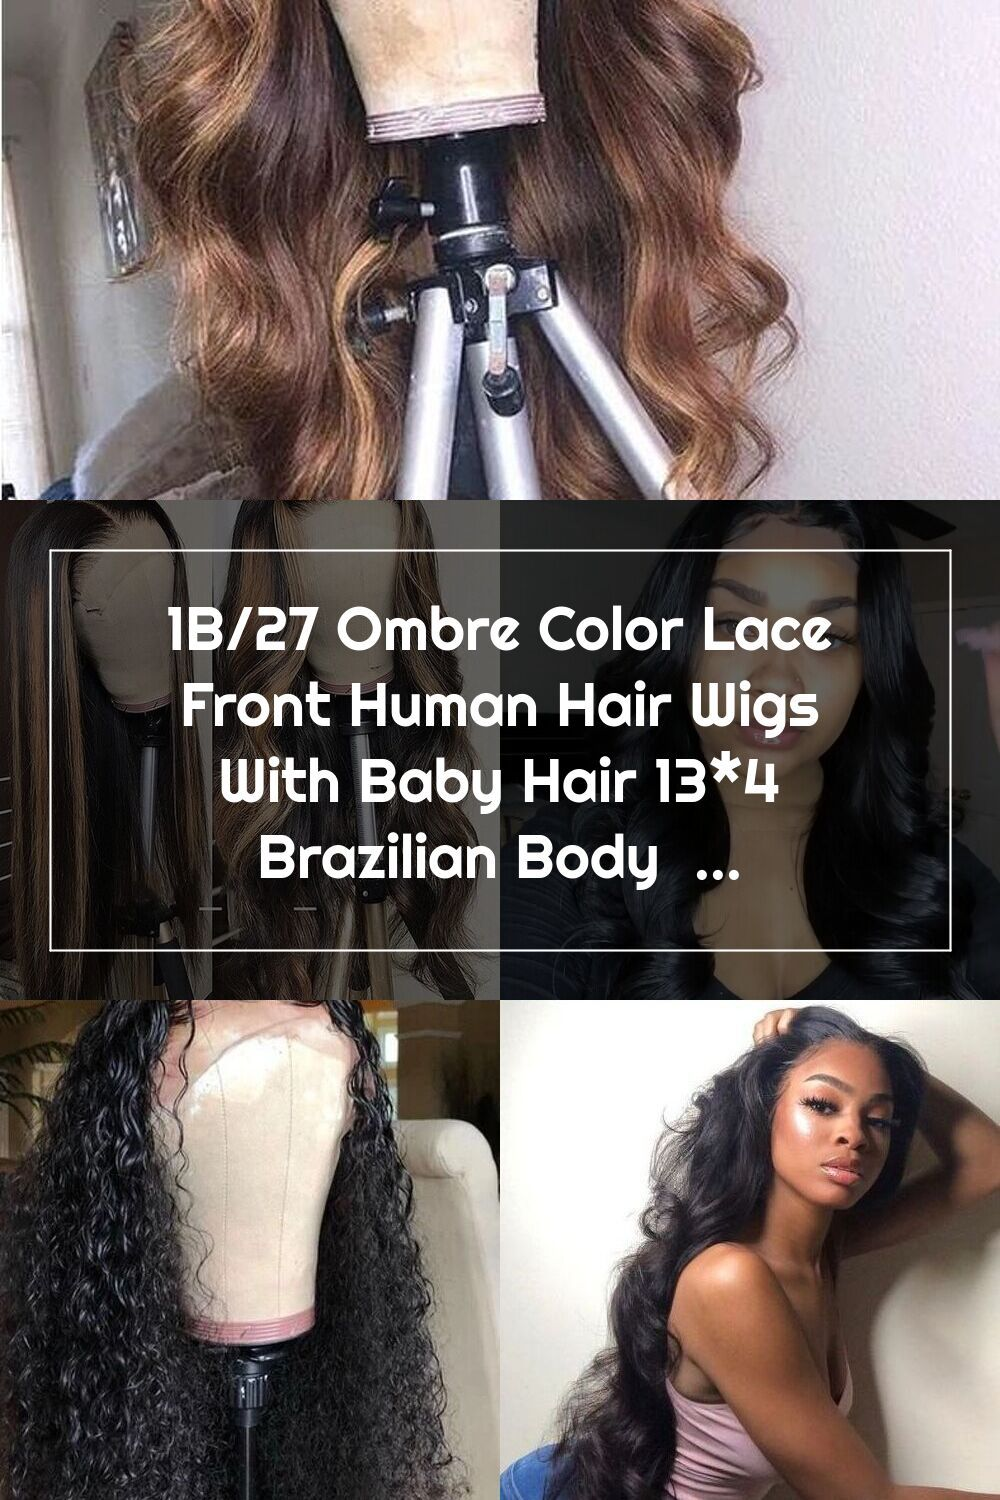 Yoniswigs 1B/27 Ombre Color Lace Front Human Hair Wigs